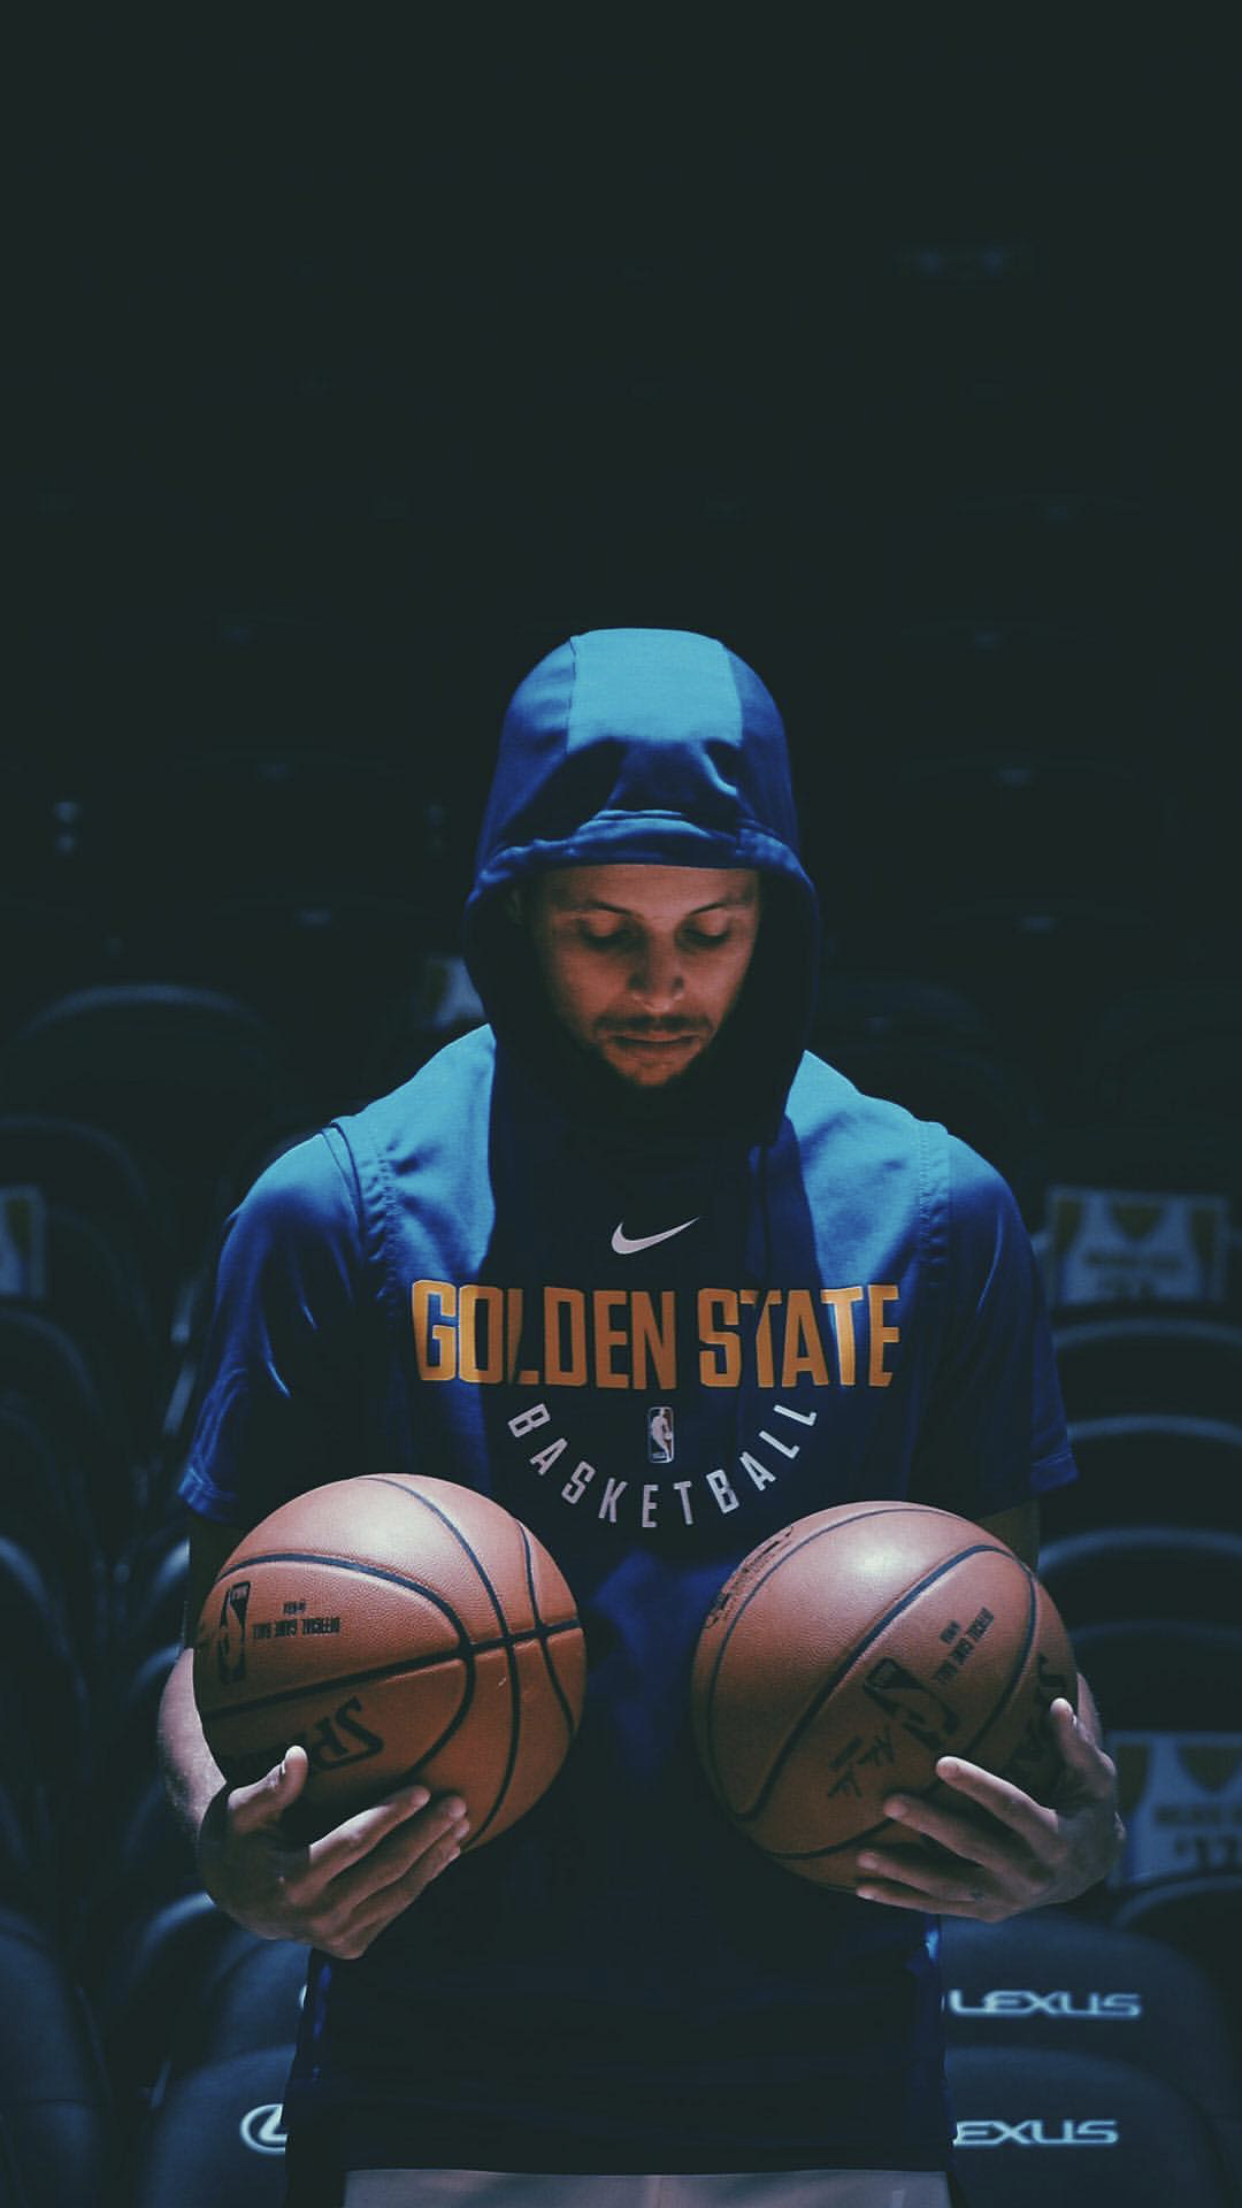 Curry Wallpaper Curry Nba Nba Stephen Curry Stephen Curry Basketball